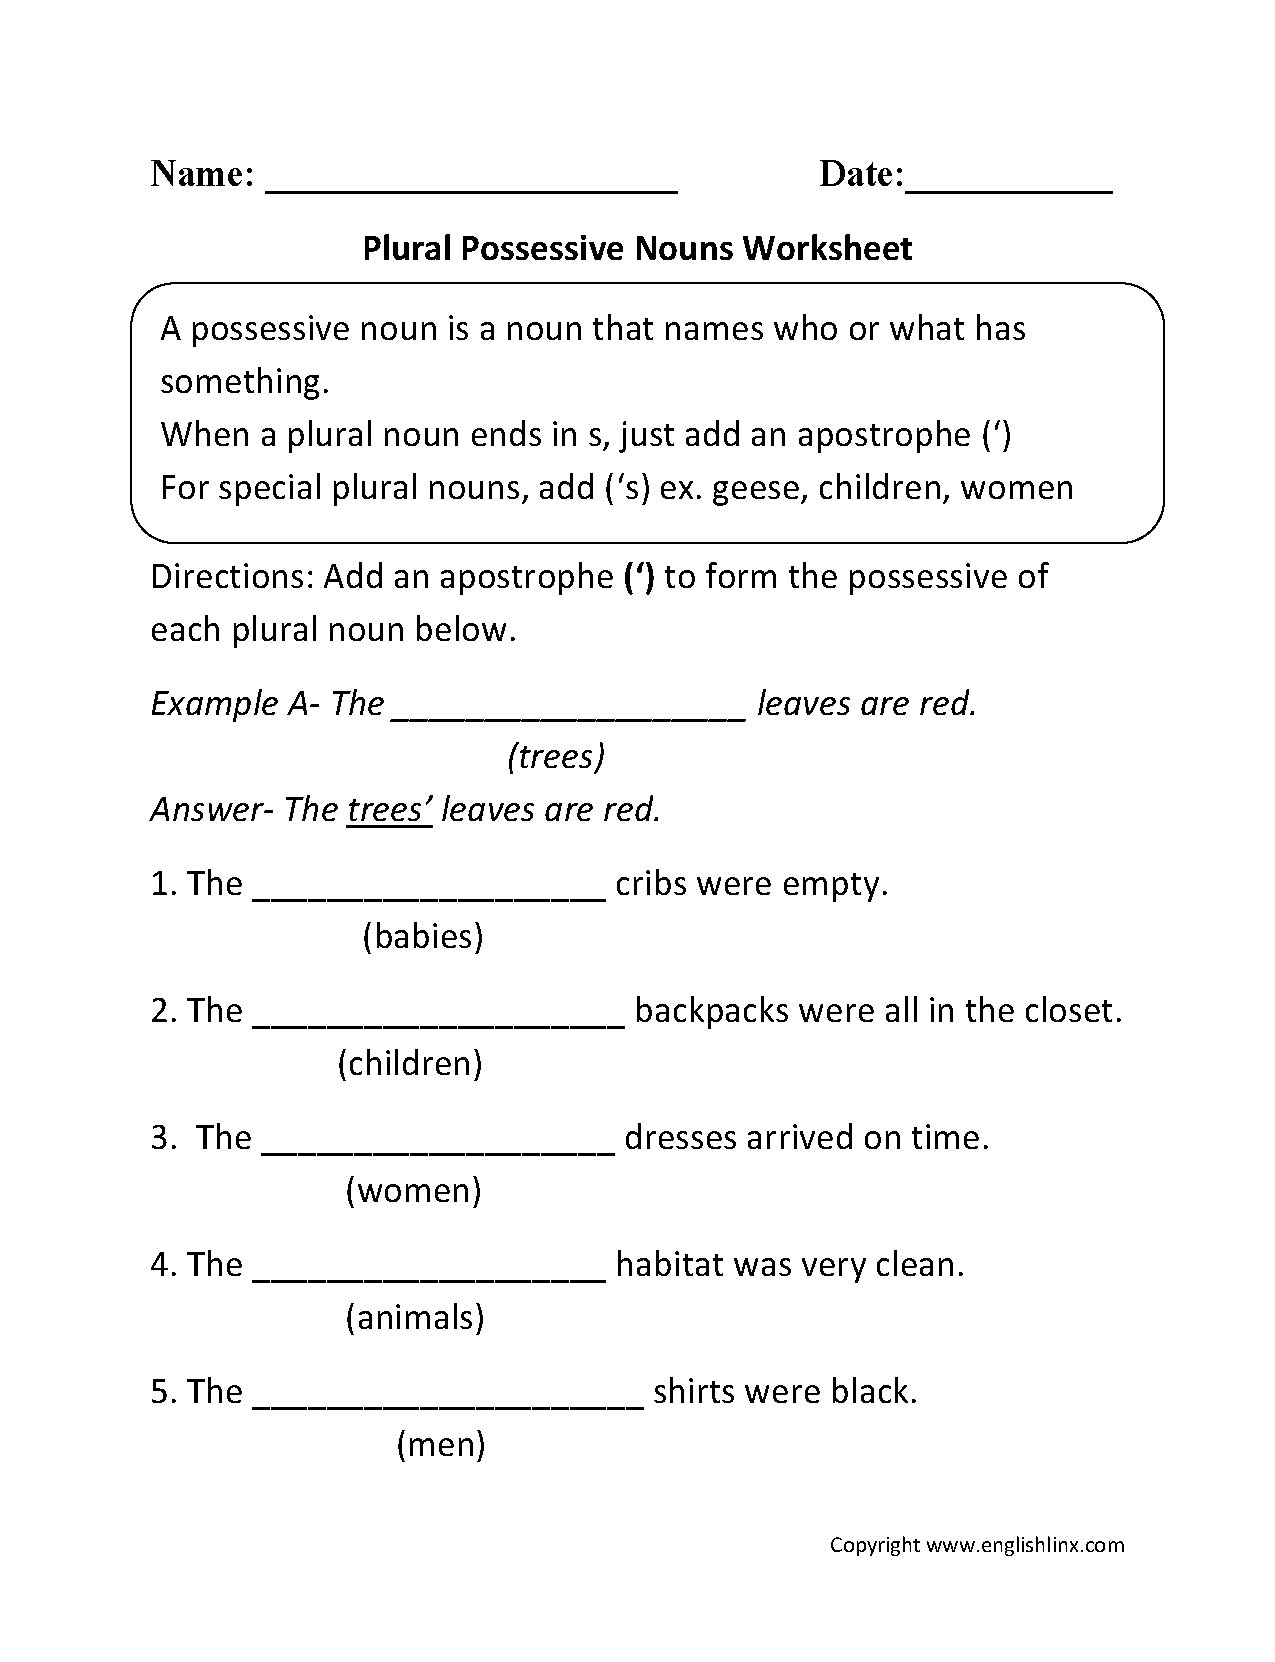 Weirdmailus  Picturesque Nouns Worksheets  Possessive Nouns Worksheets With Gorgeous Possessive Nouns Worksheets With Breathtaking Halloween Worksheets Printable Also Multiplication Table Worksheets Grade  In Addition Commutative Property Of Multiplication Worksheets Th Grade And Rationalising The Denominator Worksheet As Well As Alphabet Worksheets Esl Additionally Decimals Percentages And Fractions Worksheets From Englishlinxcom With Weirdmailus  Gorgeous Nouns Worksheets  Possessive Nouns Worksheets With Breathtaking Possessive Nouns Worksheets And Picturesque Halloween Worksheets Printable Also Multiplication Table Worksheets Grade  In Addition Commutative Property Of Multiplication Worksheets Th Grade From Englishlinxcom